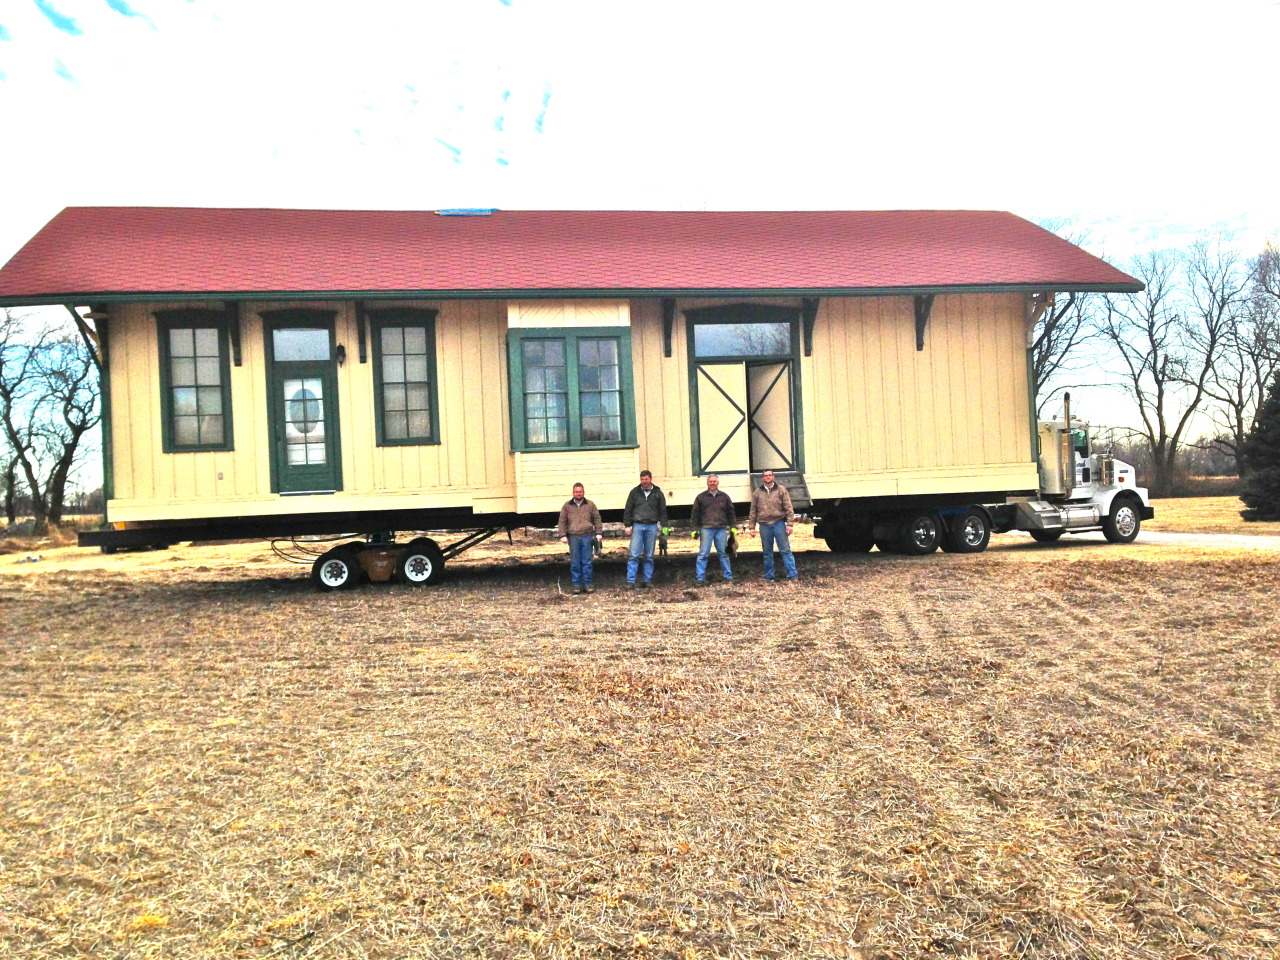 Unruh House Moving boys, James, Shelby, Monroe and Dwayne are experts. The circa 1879 Santa Fe depot, originally from Oxford, Kansas was acquired by Bill and Sammye VanderWall in the 1990s. It was restored and used as a ceramics studio for Sammye's pottery work. Relocated on Feb. 4, 2013 to Bartlett Arboretum, it will now be utilized as an educational classroom, workshop retreat space and will be a memorial to Sammye VanderWall's creative spirit. The dedication of this extraordinary building and gift is planned for Oct. 13 with a piano performance by Grammy nominee, Phil Aaberg.